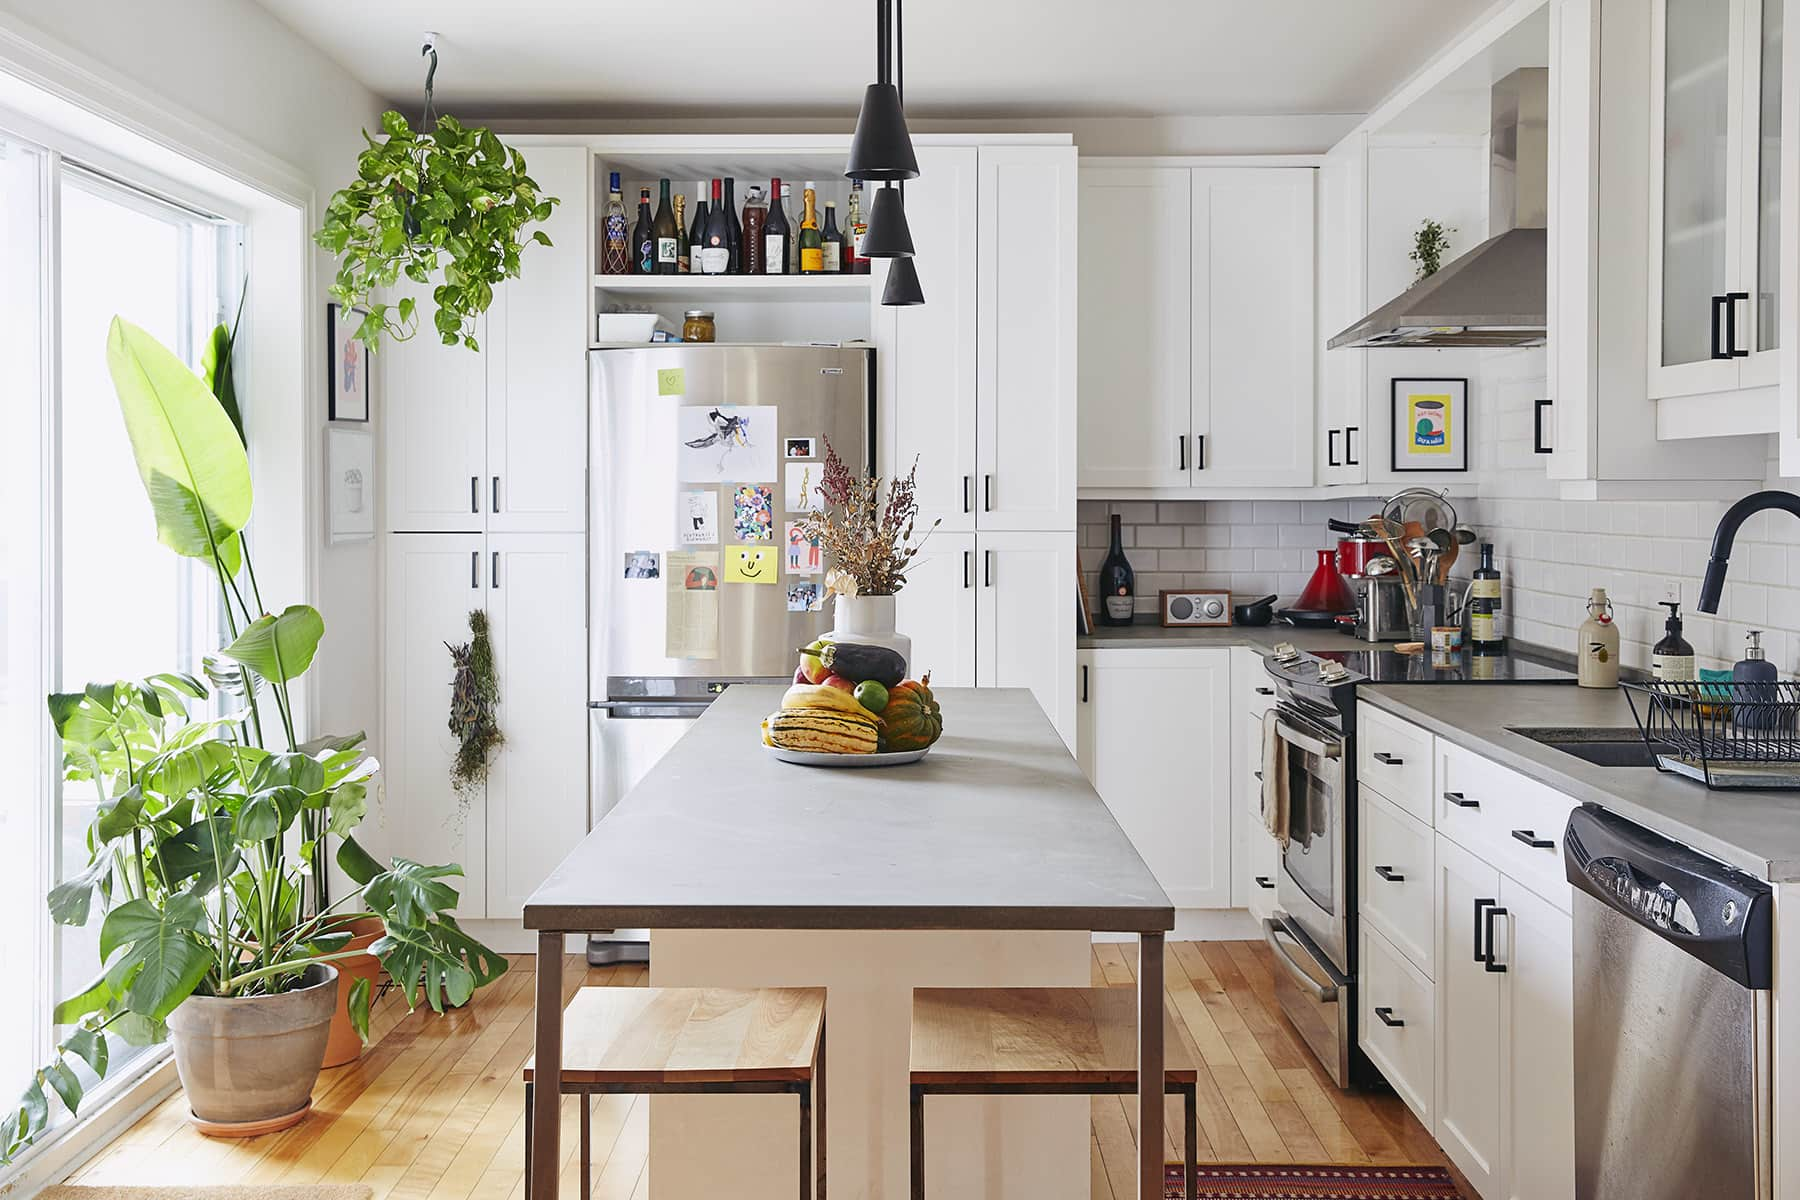 The Dishwasher Mistake Almost Everyone Makes (and How to Quit)